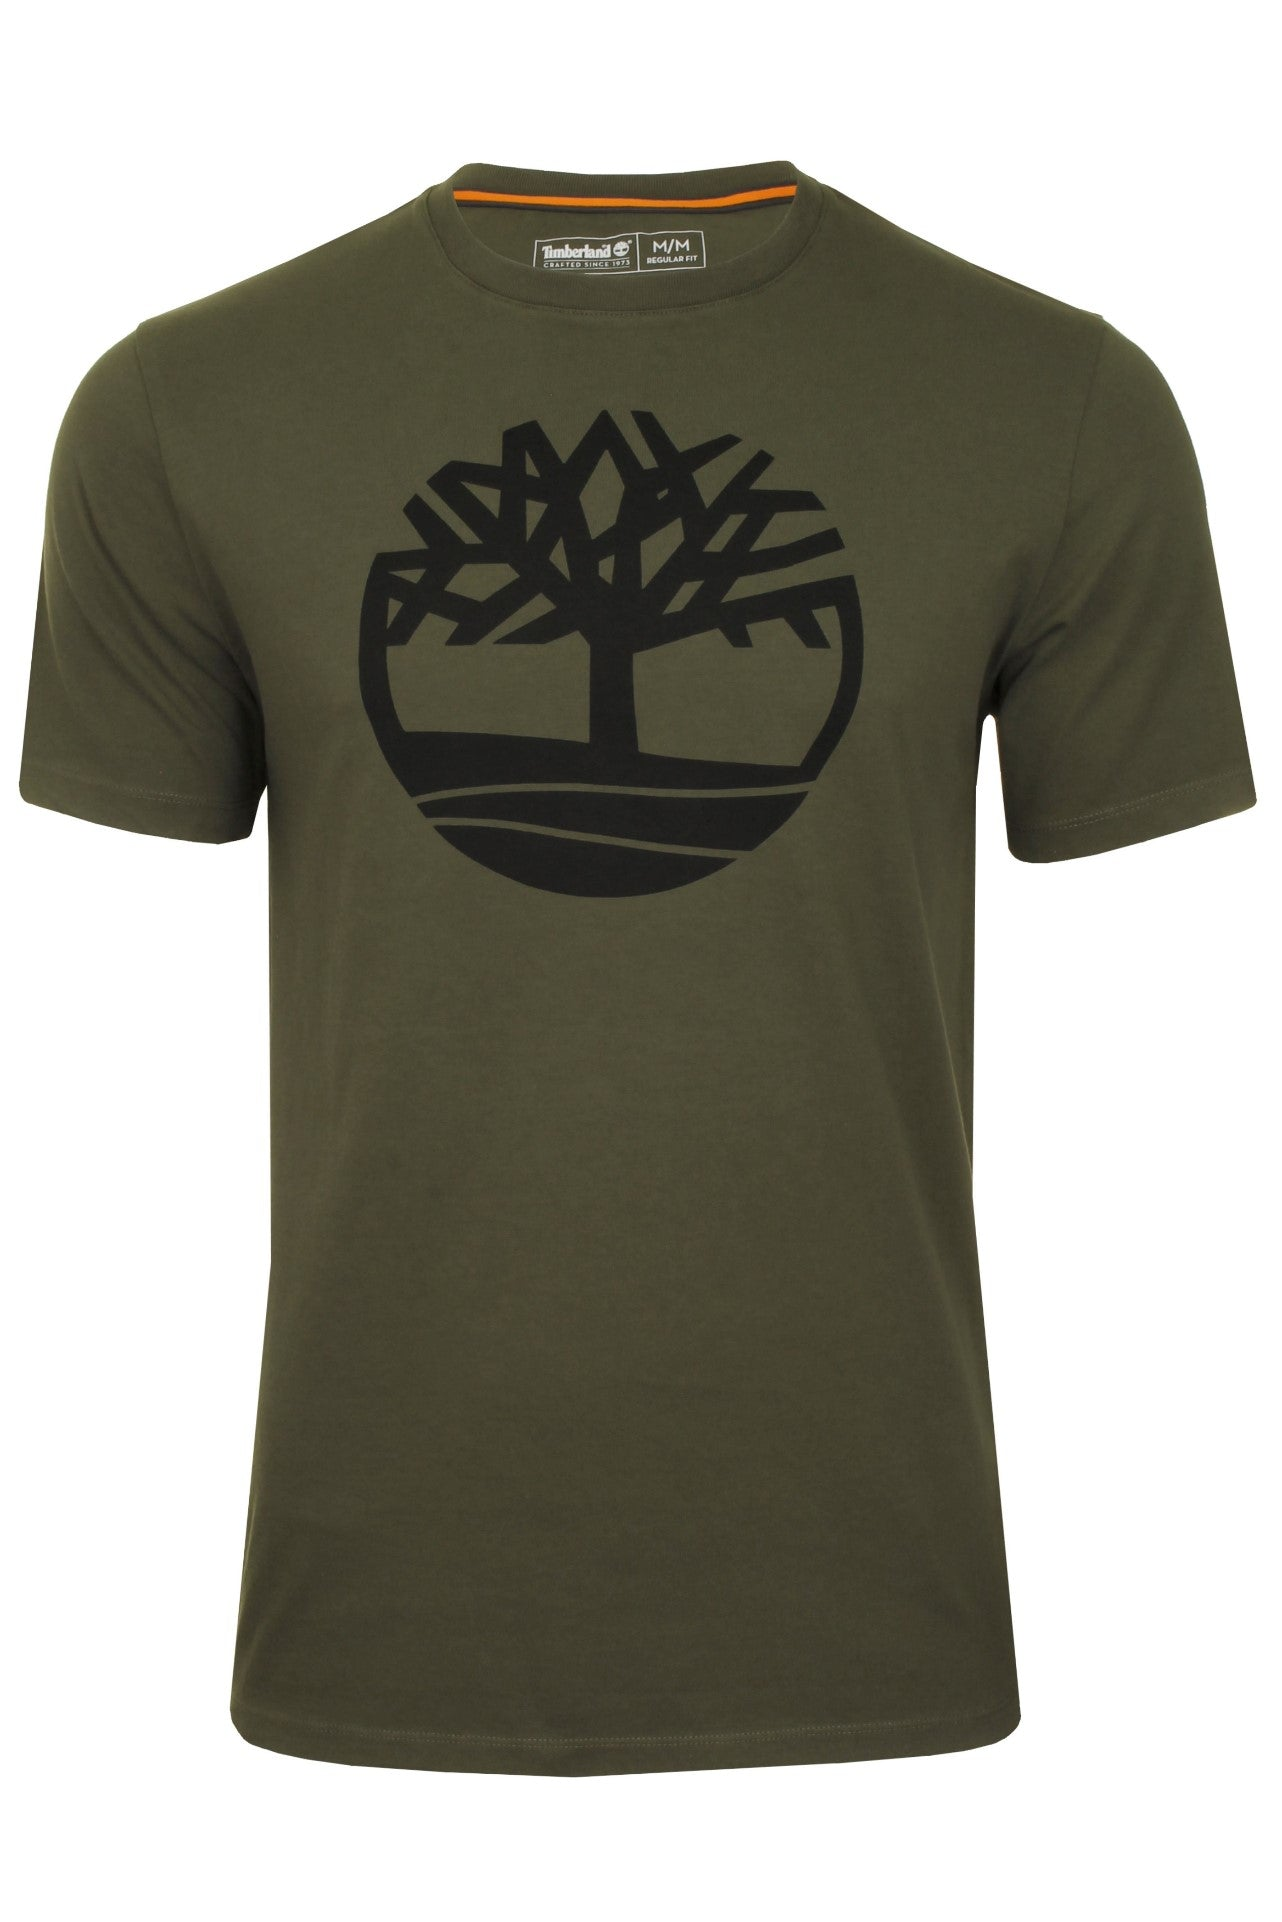 Timberland 'Kennebec River Tree Logo' T-Shirt - Short Sleeved_02_Tb0A2C2R